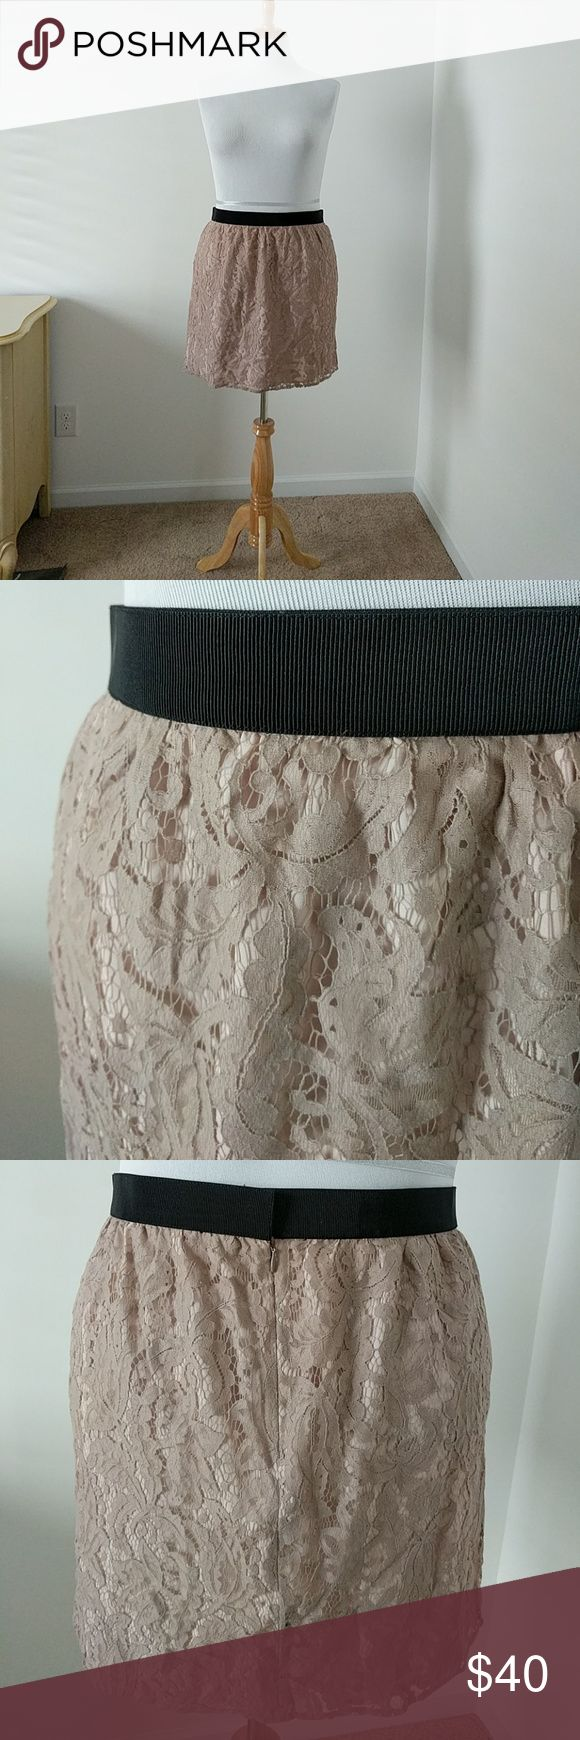 """🆕Loft Blush Mauve Lace Skirt🆕 Gorgeous! Blush lace skirt from Loft. New with tags. Outer lace is a darker, almost mauve color and the living is pale pink. The combination is stunning. Black waist band with back sip and tab (waist is not elastic).  61% cotton, 39% nylon (lining is 100% polyester). Hand washable.   Approx measurements: Length from top of waist = 19"""" Waist = 36"""" all the way around Hip= 45"""" LOFT Skirts Mini"""